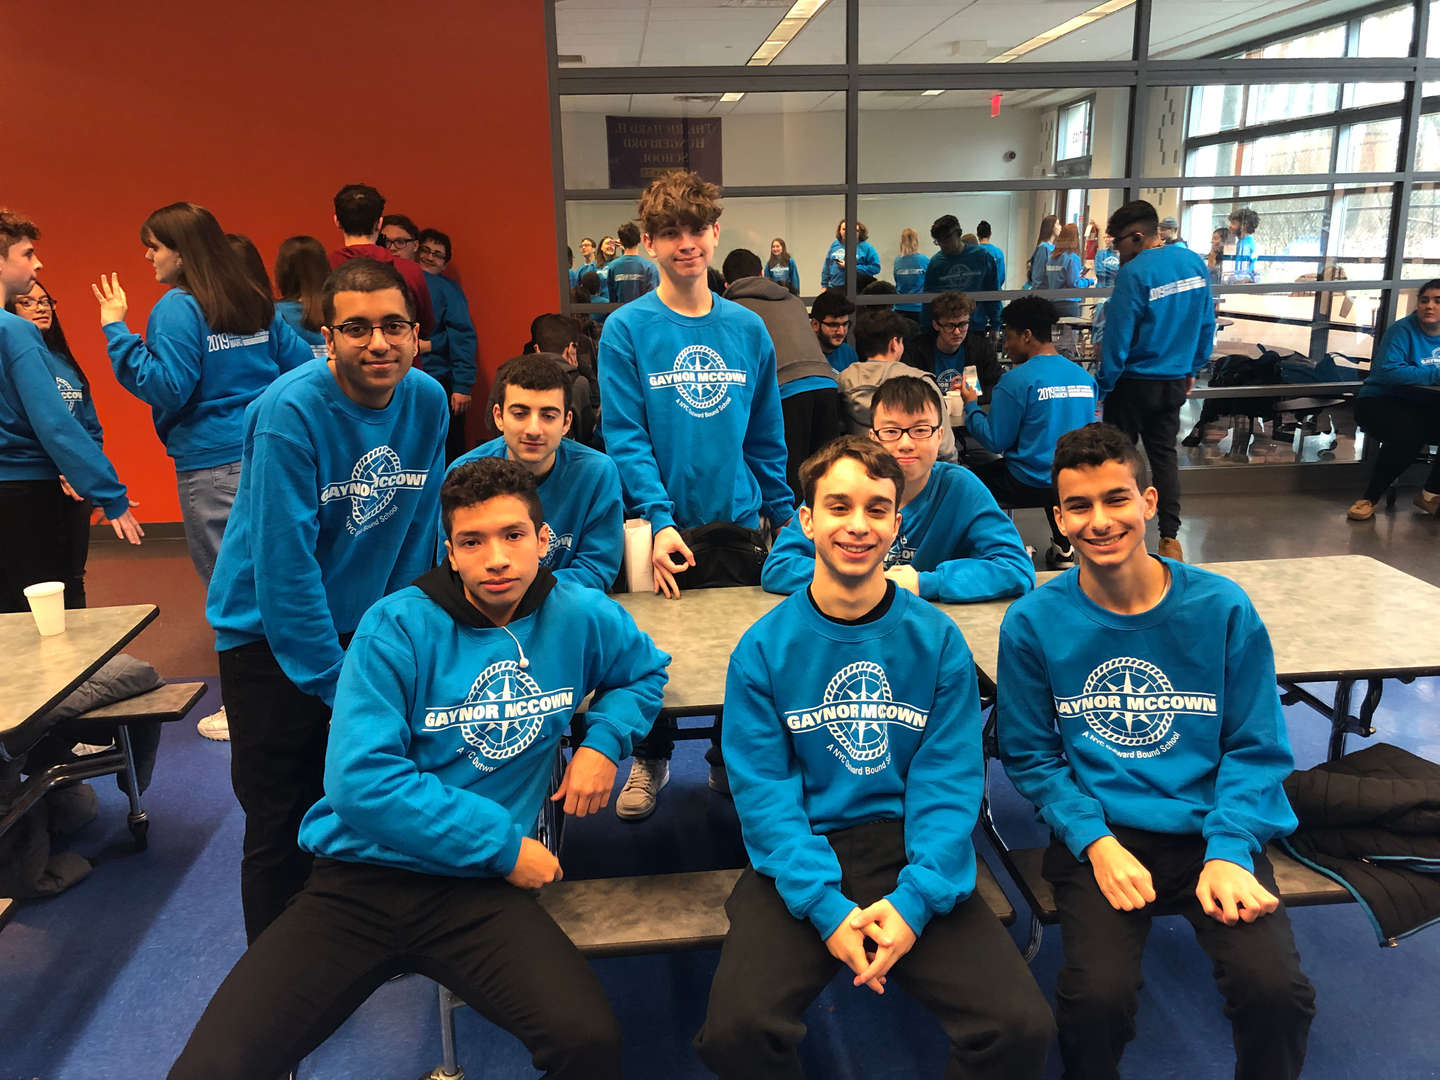 Group of boys sitting at table wearing blue Gaynor McCown sweatshirts